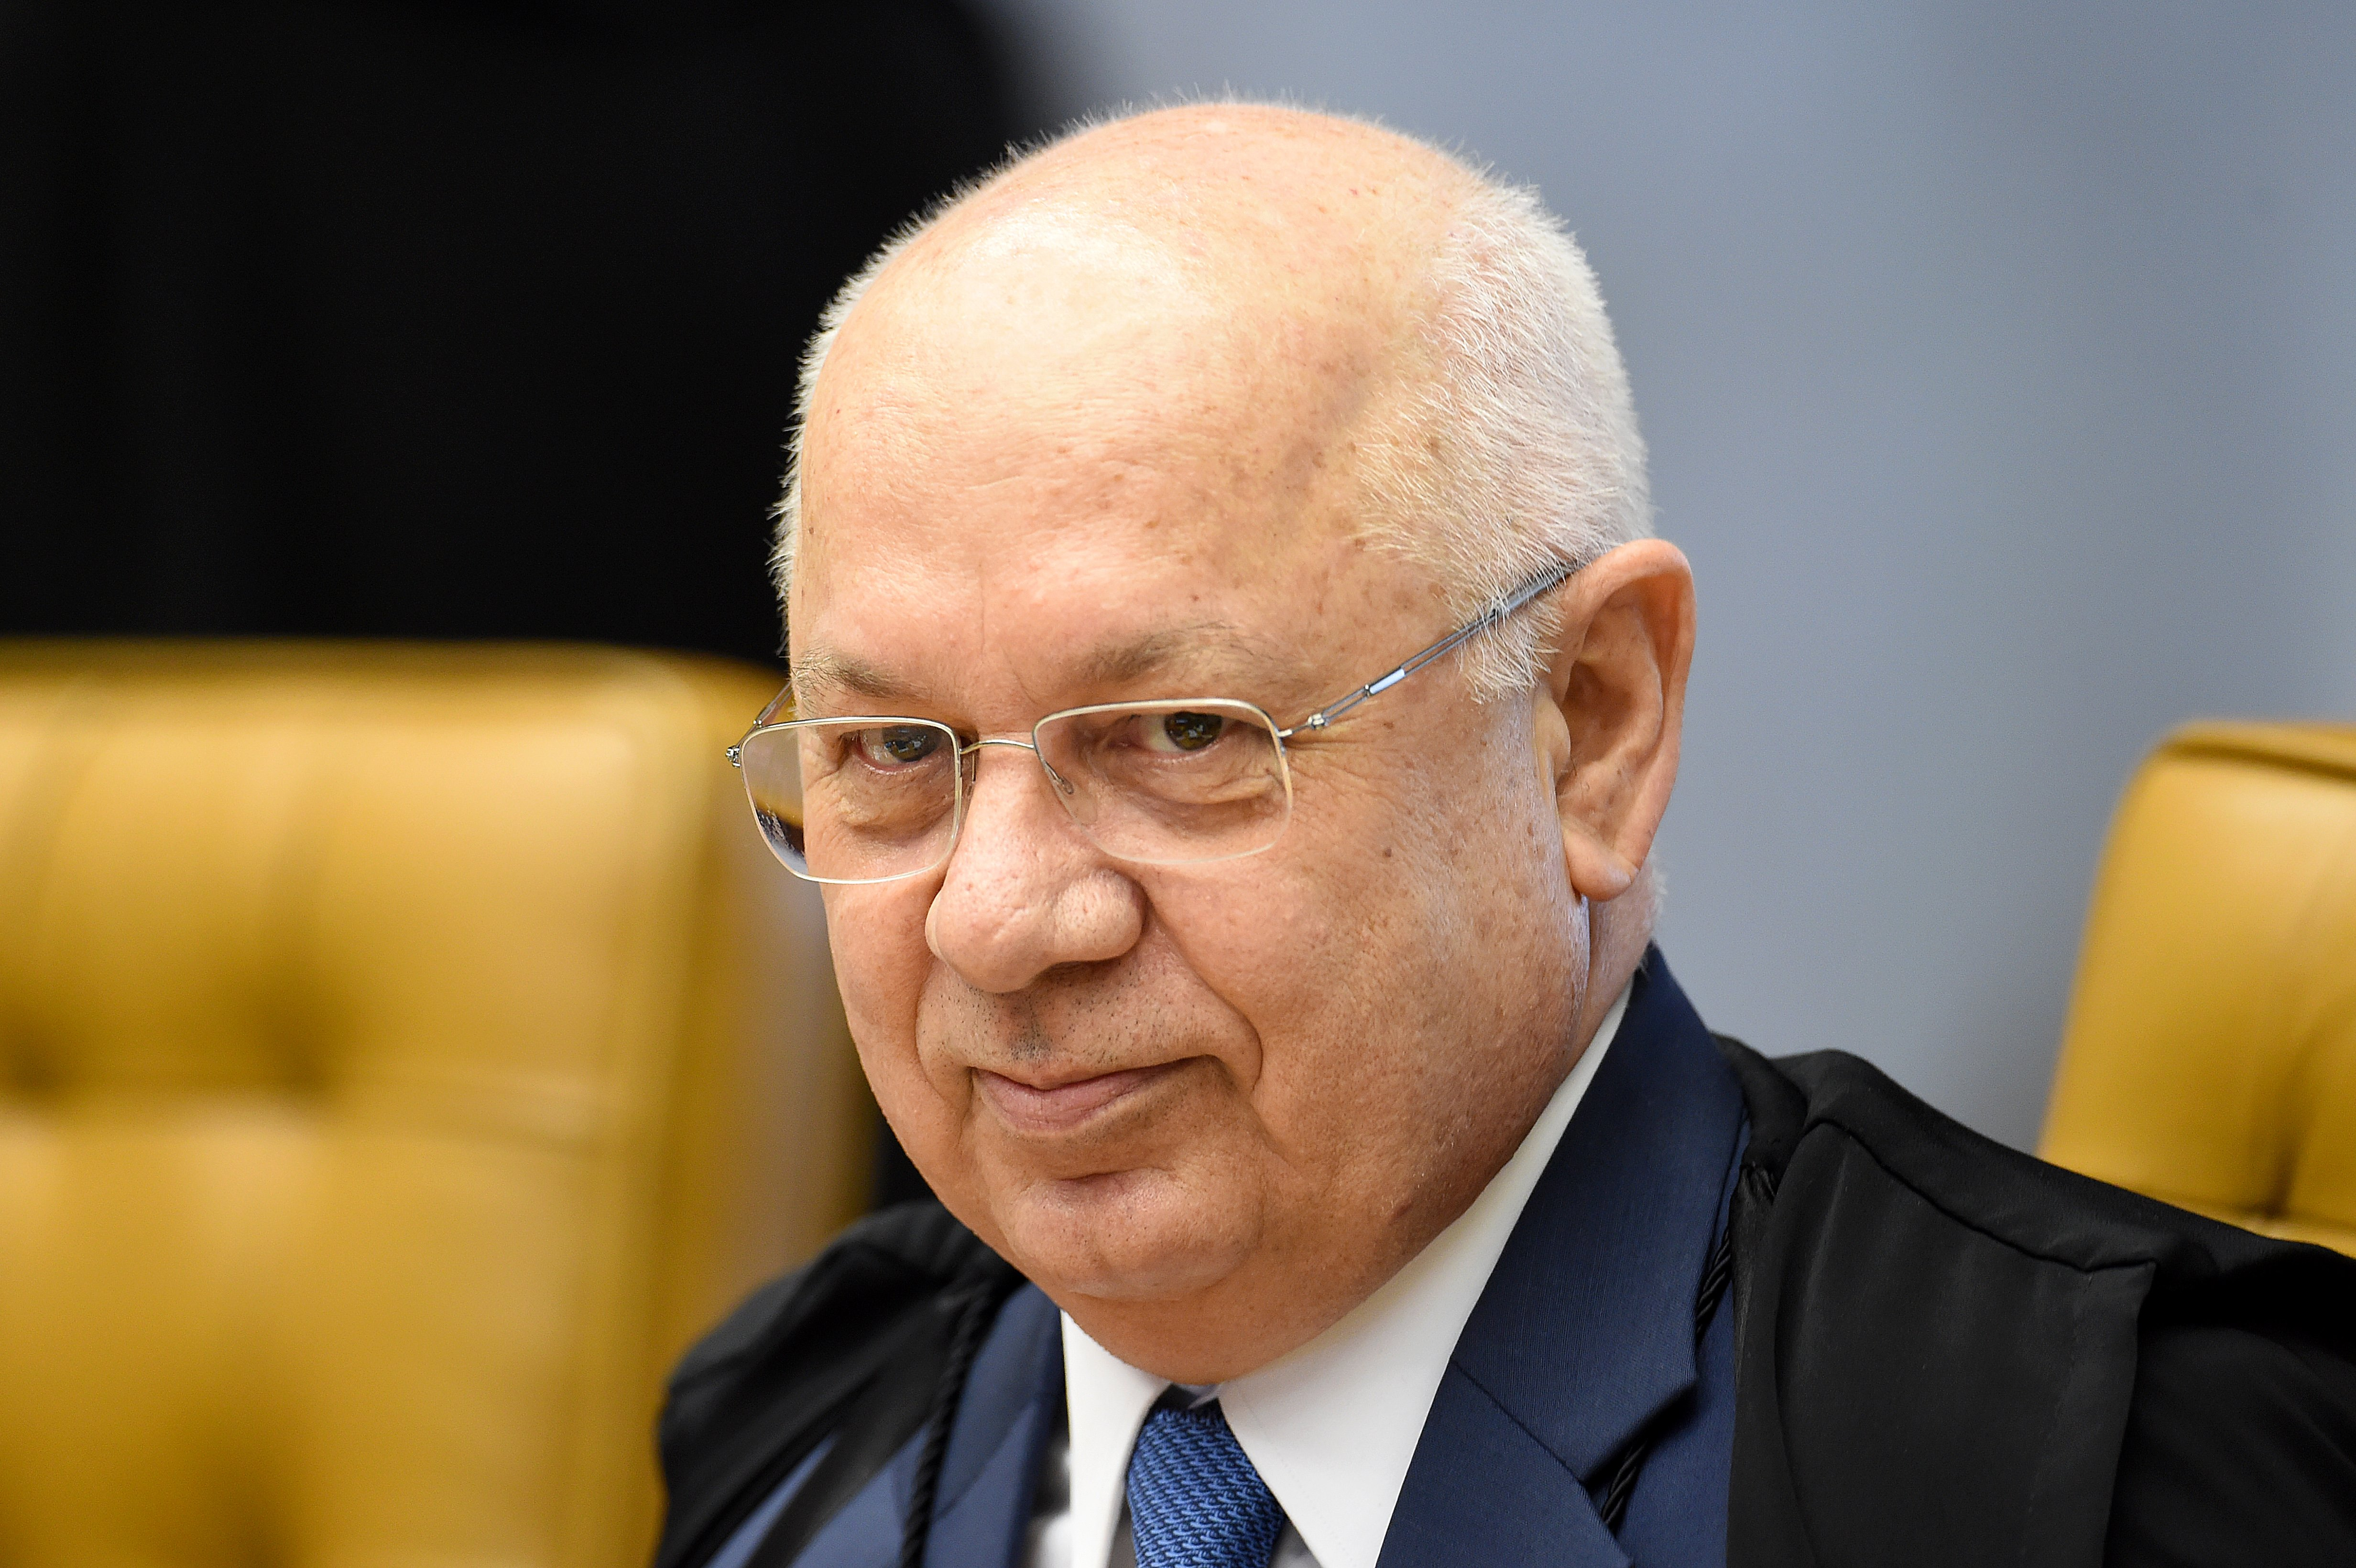 Brazil's Supreme Federal Tribunal (STF) Minister Teori Zavascki during a session to discuss the impeachment of President Dilma Rousseff in Brasilia, on December 16, 2015.